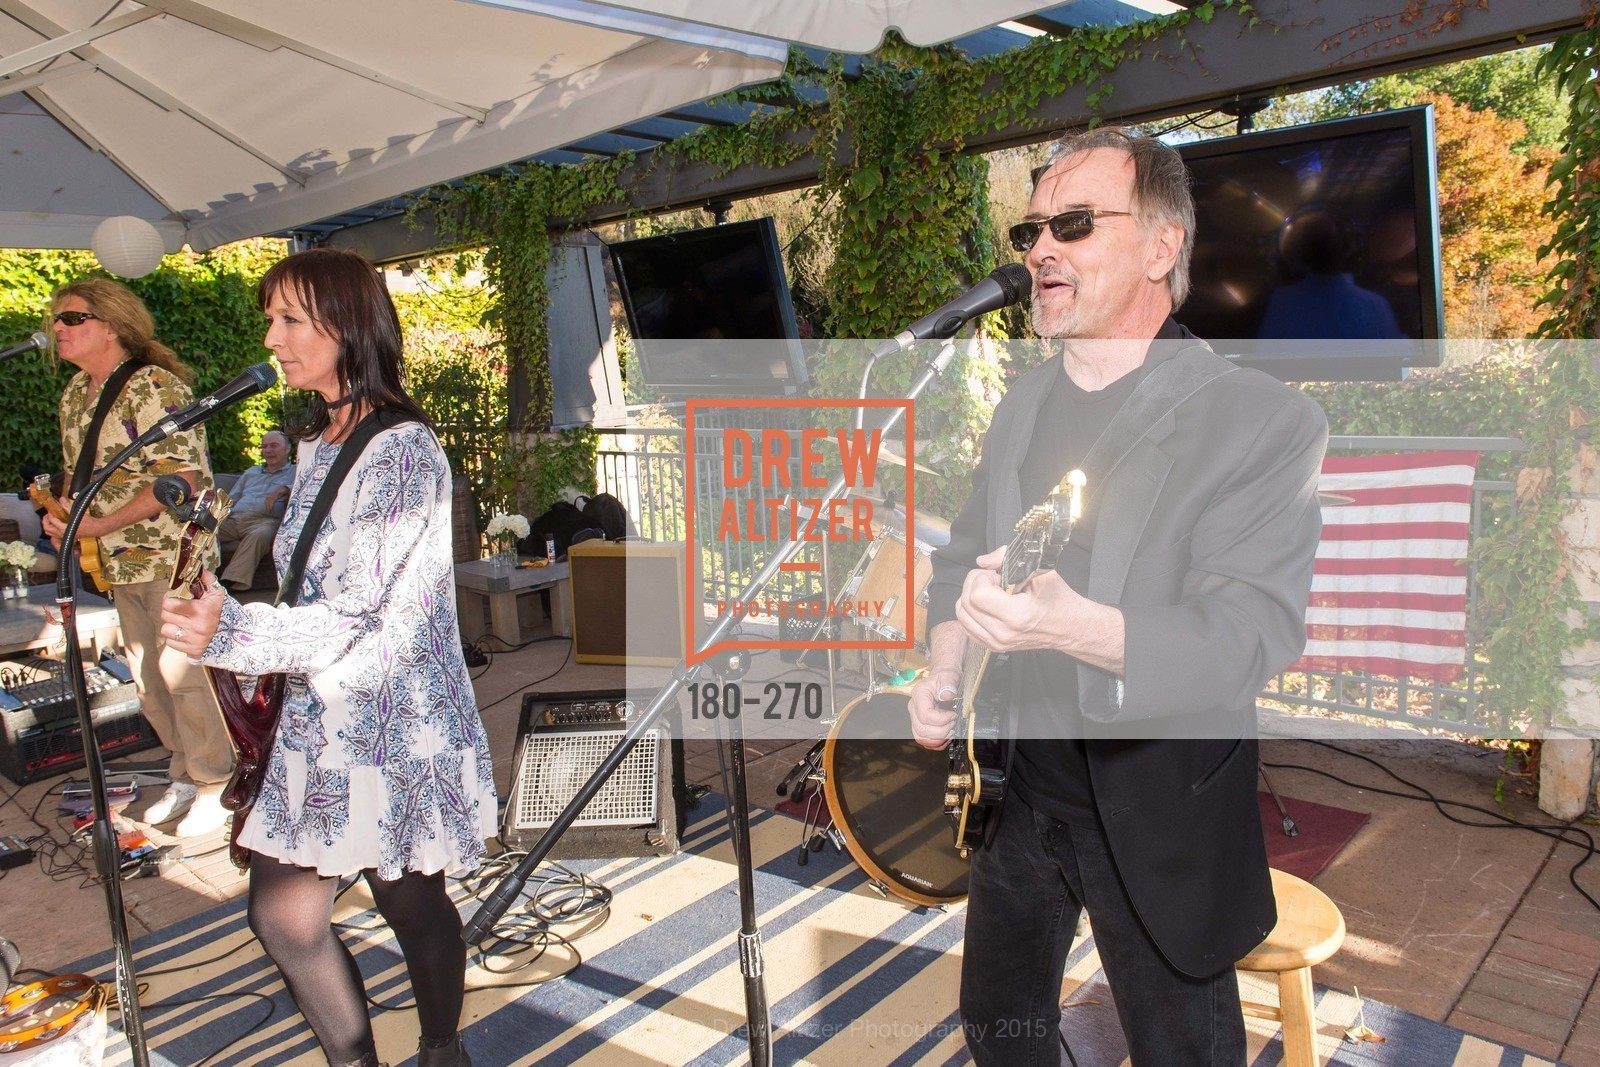 Performance, Bay Club StoneTree Bianco Party, ay Club StoneTree. 9 Stone Tree Lane, August 29th, 2015,Drew Altizer, Drew Altizer Photography, full-service agency, private events, San Francisco photographer, photographer california